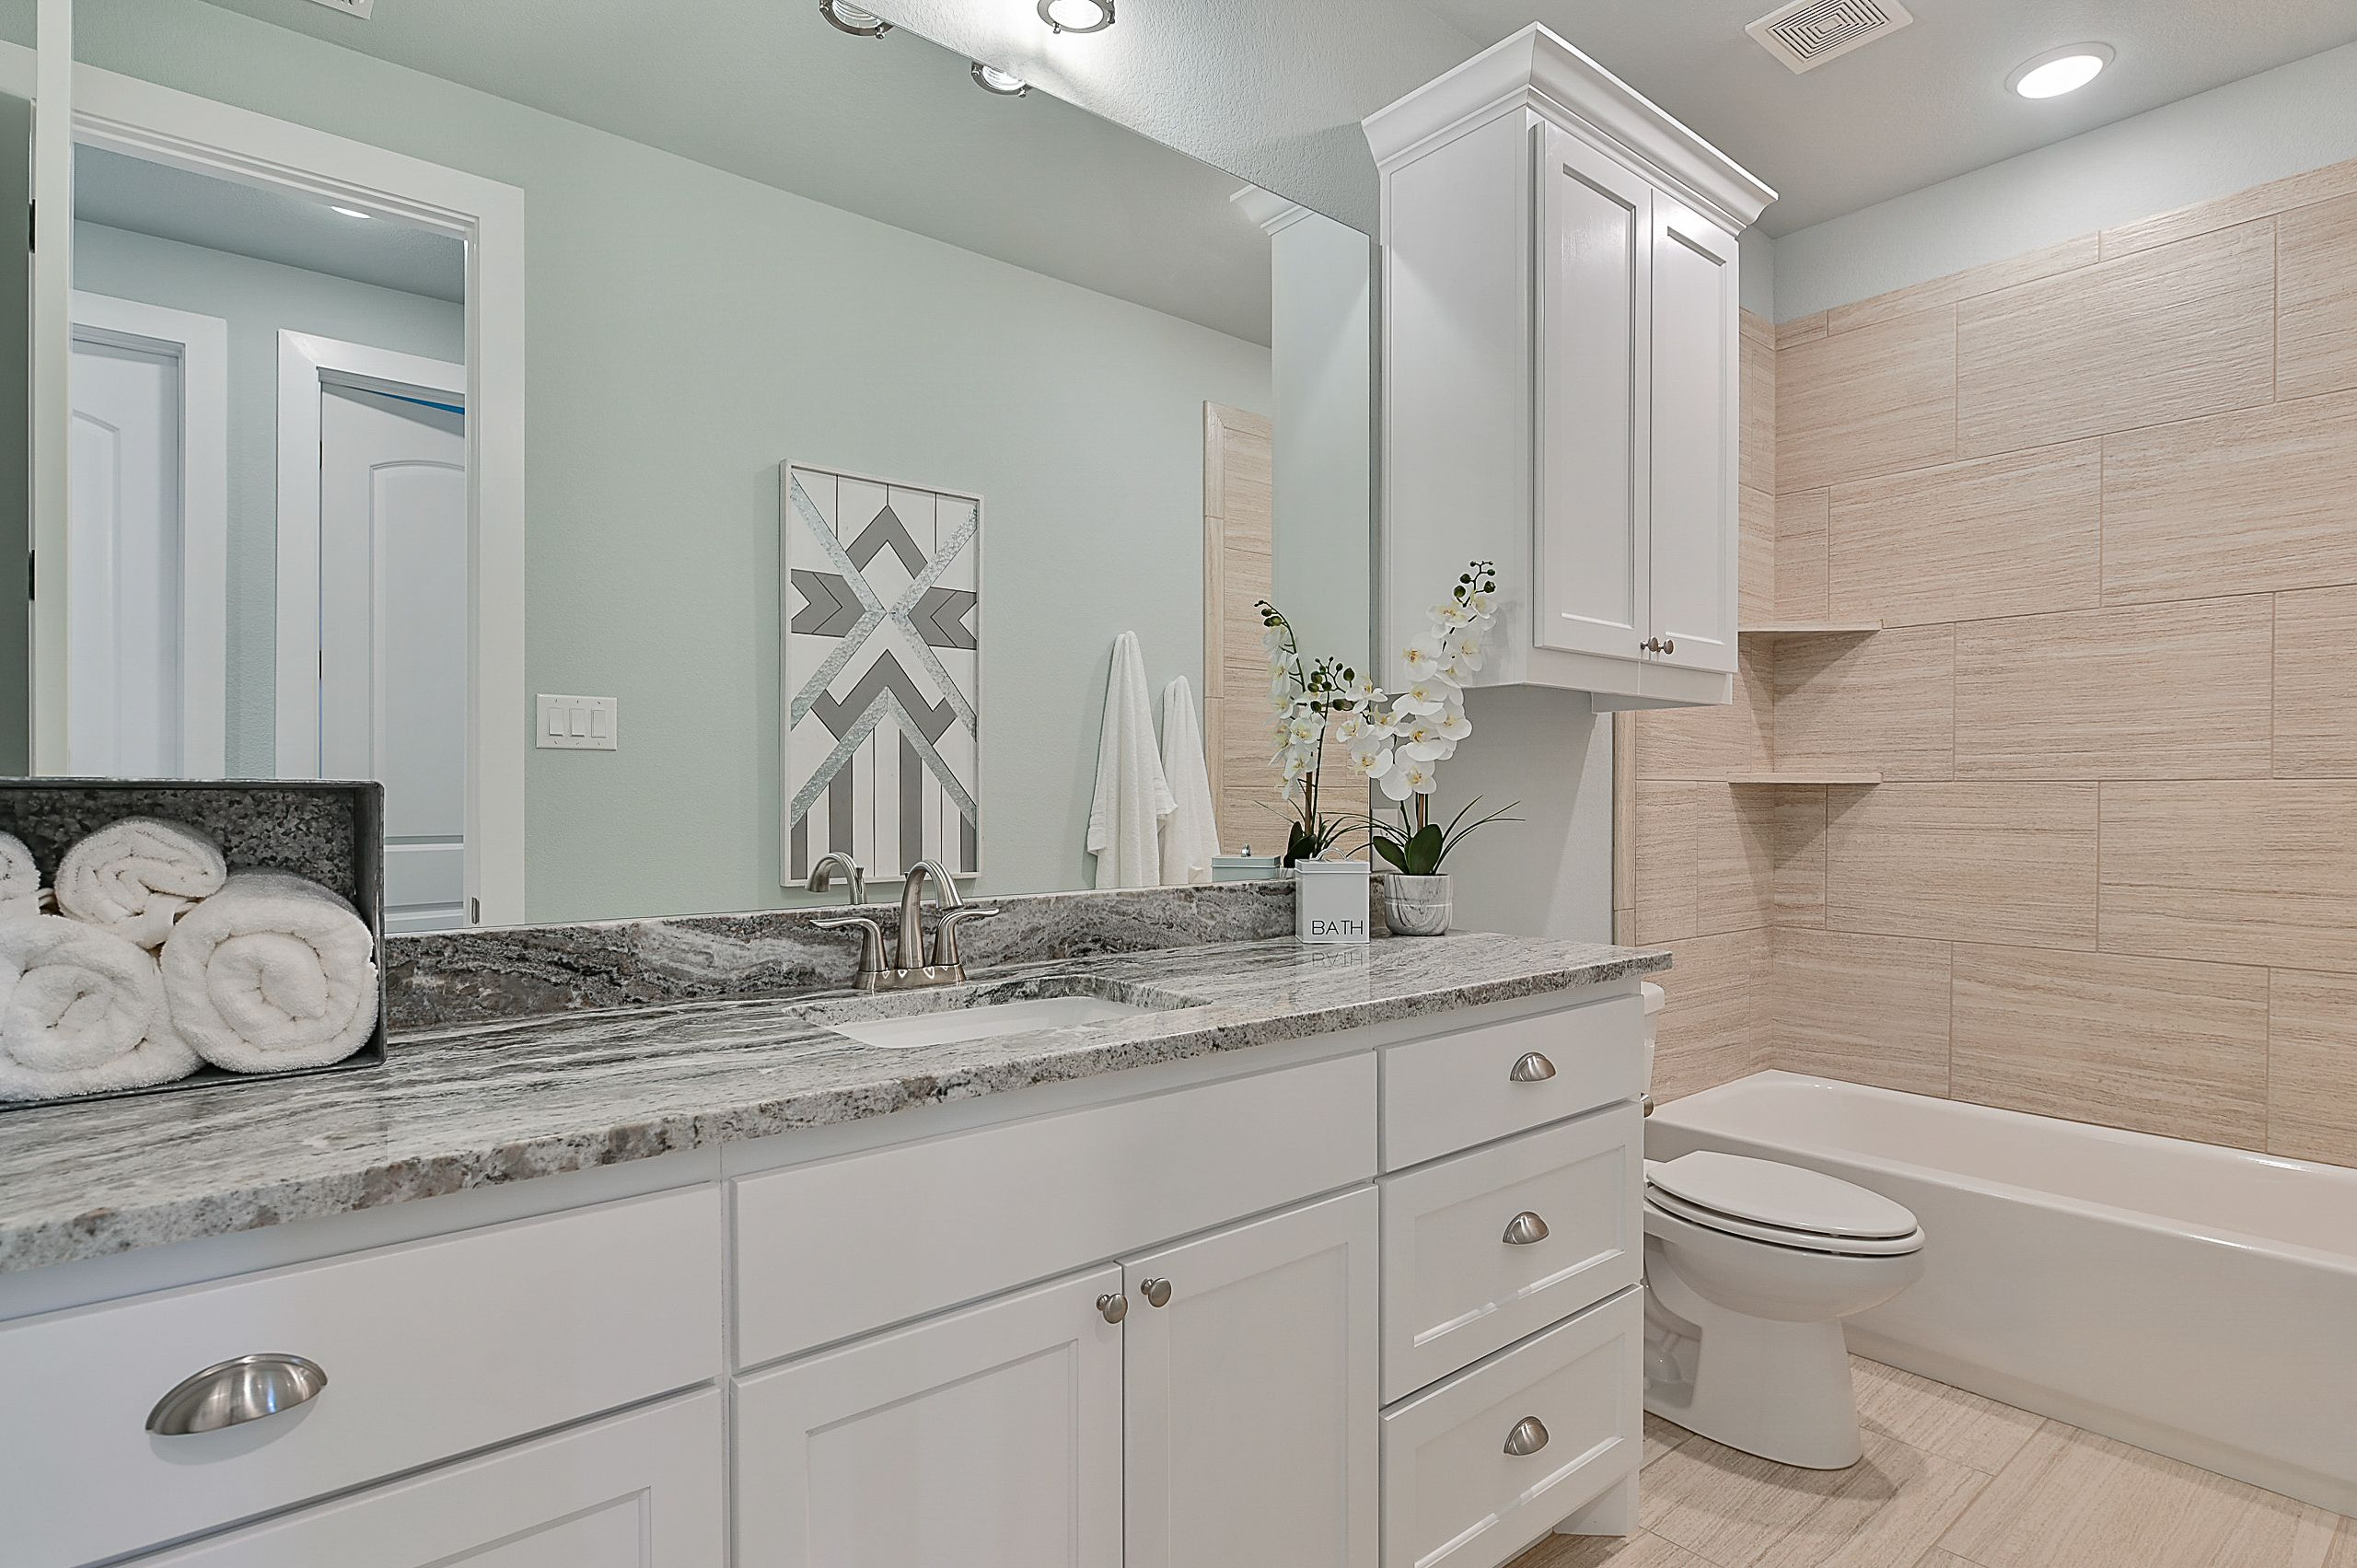 Bathroom featured in the Emerson By Blackstone Homes in Bryan-College Station, TX